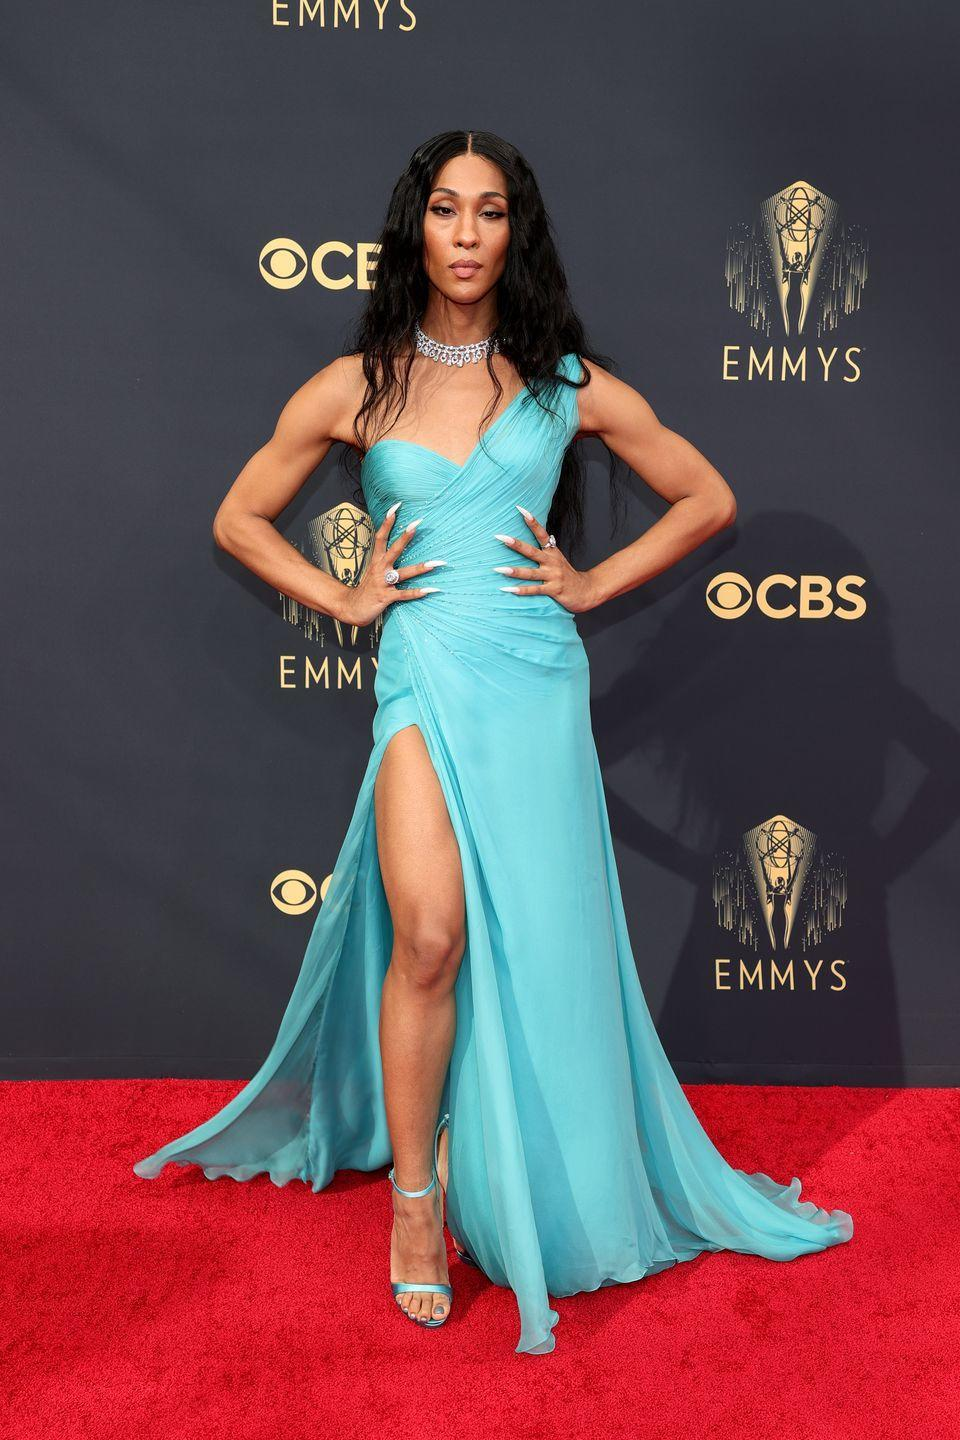 <p><strong>What:</strong> Vintage Atelier Versace and Bulgari</p><p><strong>Why: </strong>The color. The cut. The slit. Need we say more? This look says goddess from head to toe, including the breathtaking Bulgari jewels. It's vintage to boot, which proves that sustainable, archival looks on the red carpet feel just as fresh as something shiny and new.</p>